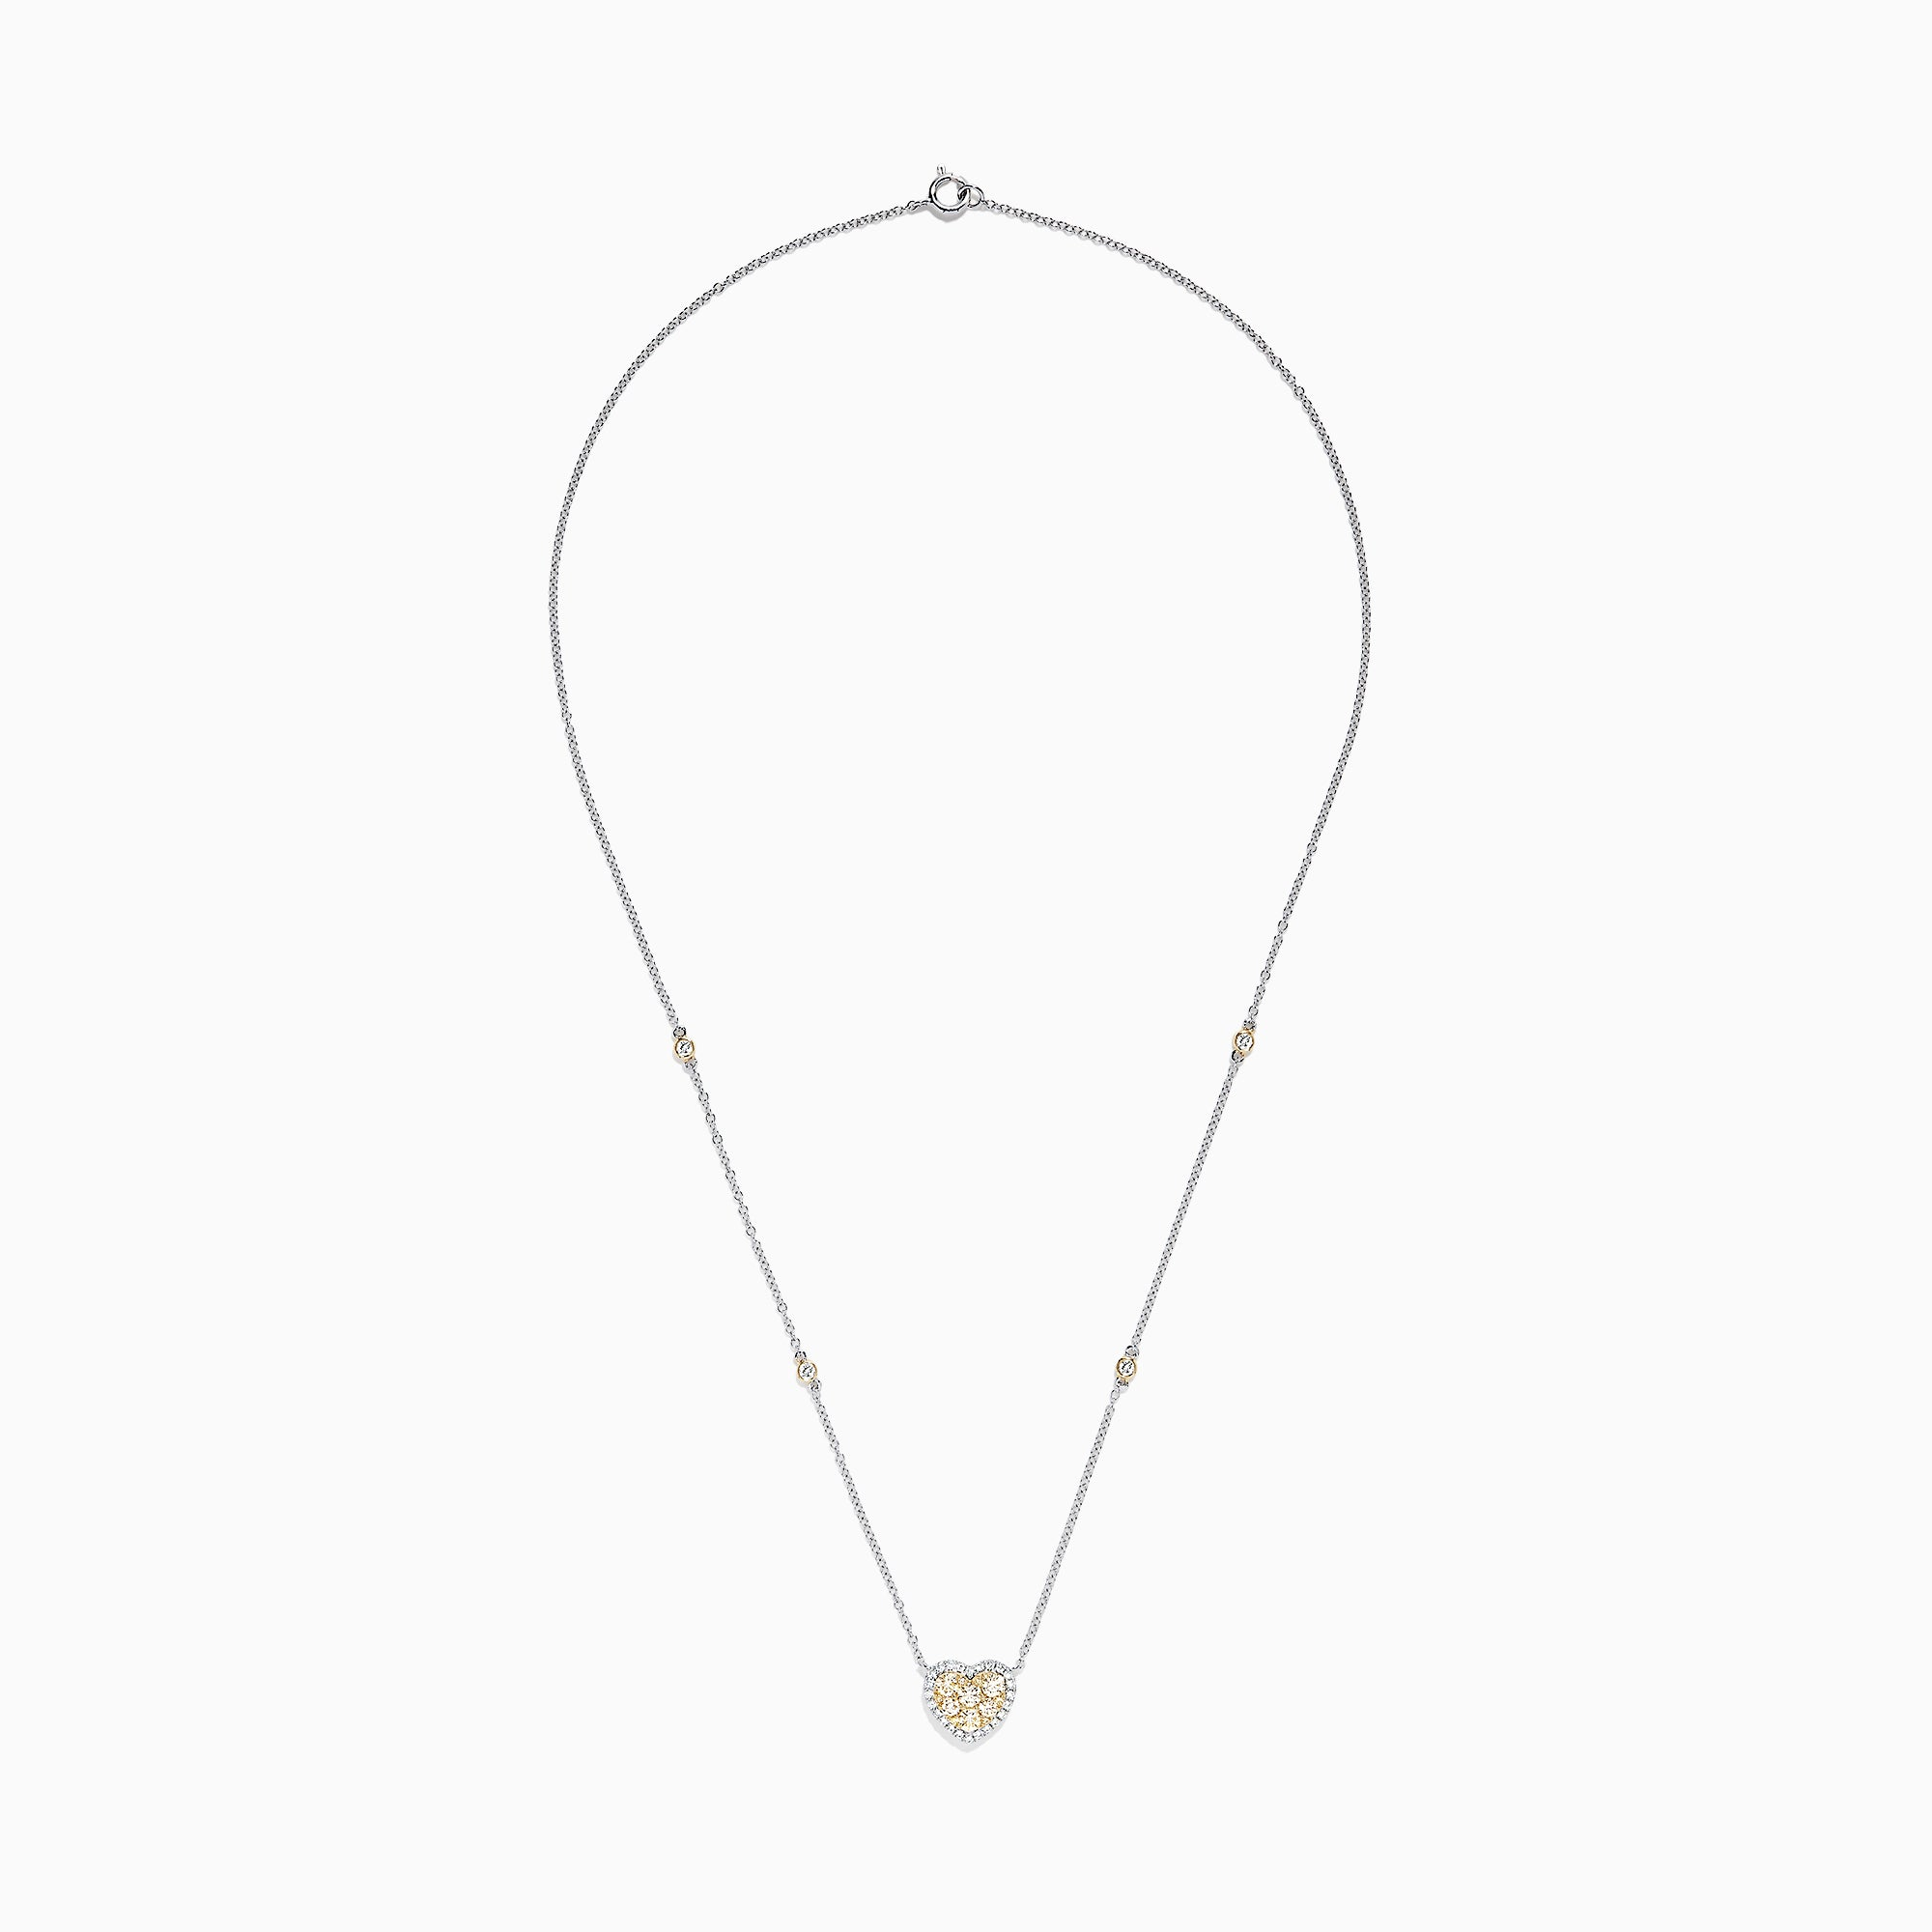 Effy Canare 14K Two Tone Gold Yellow and White Diamond Heart Necklace, 0.71 TCW